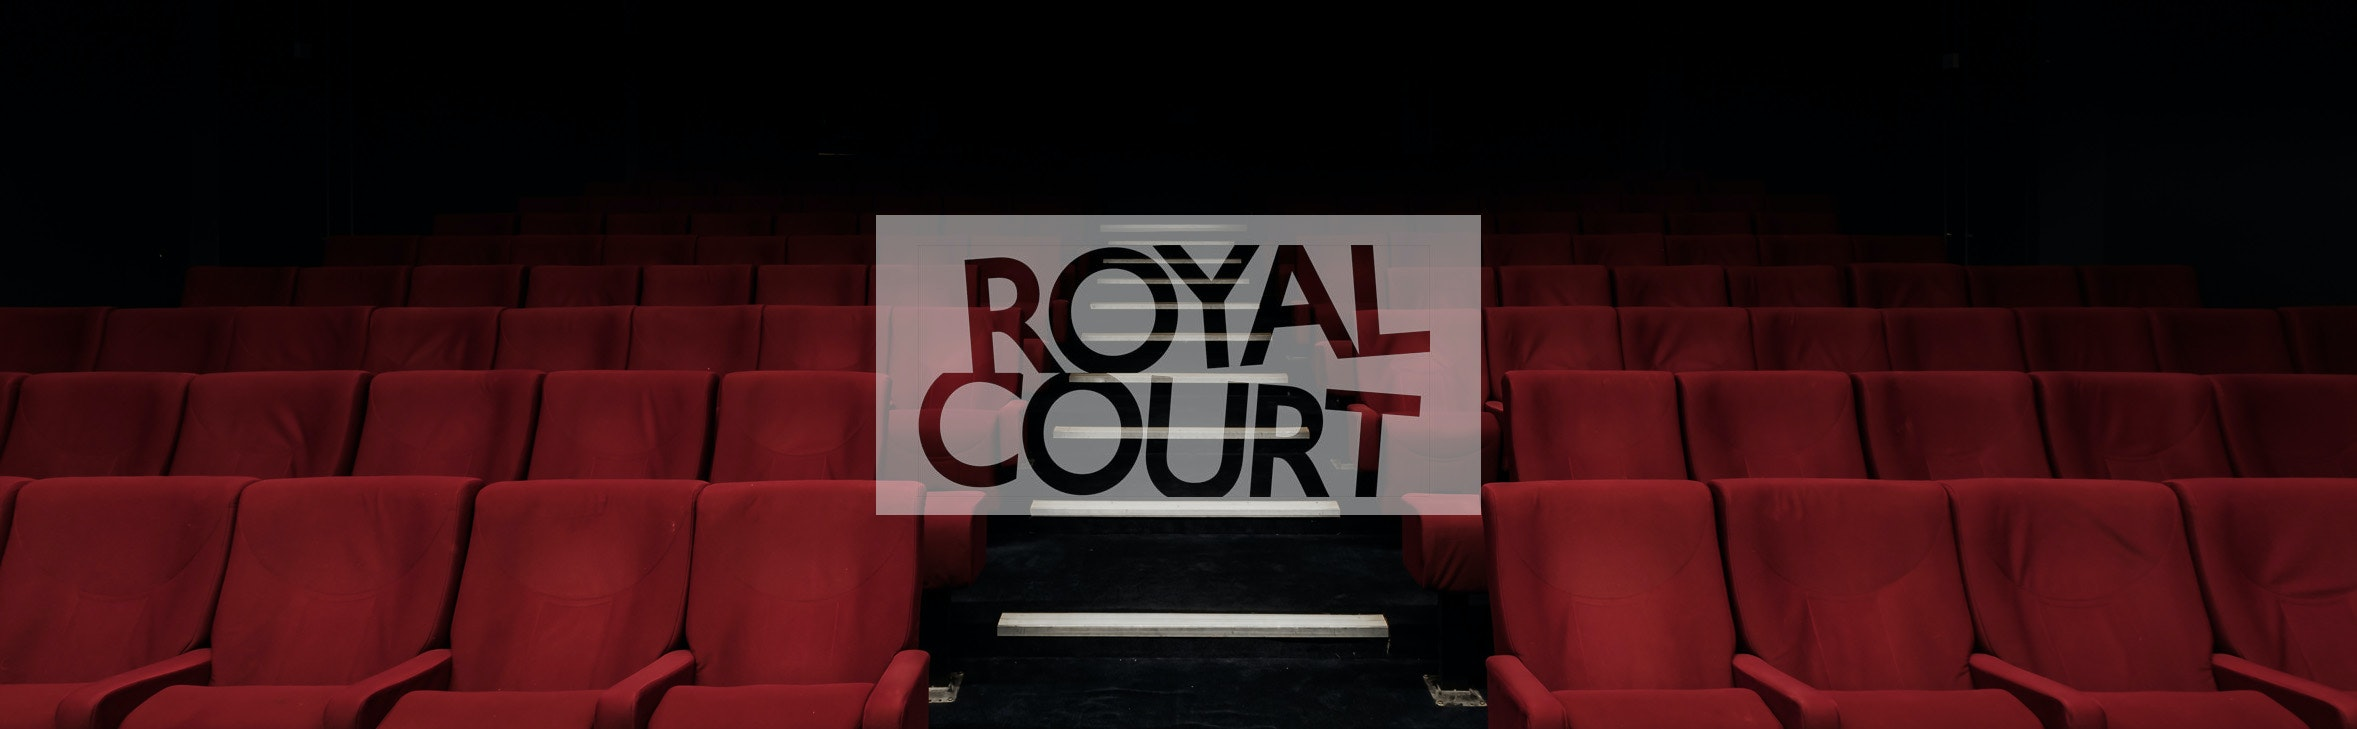 The Royal Court